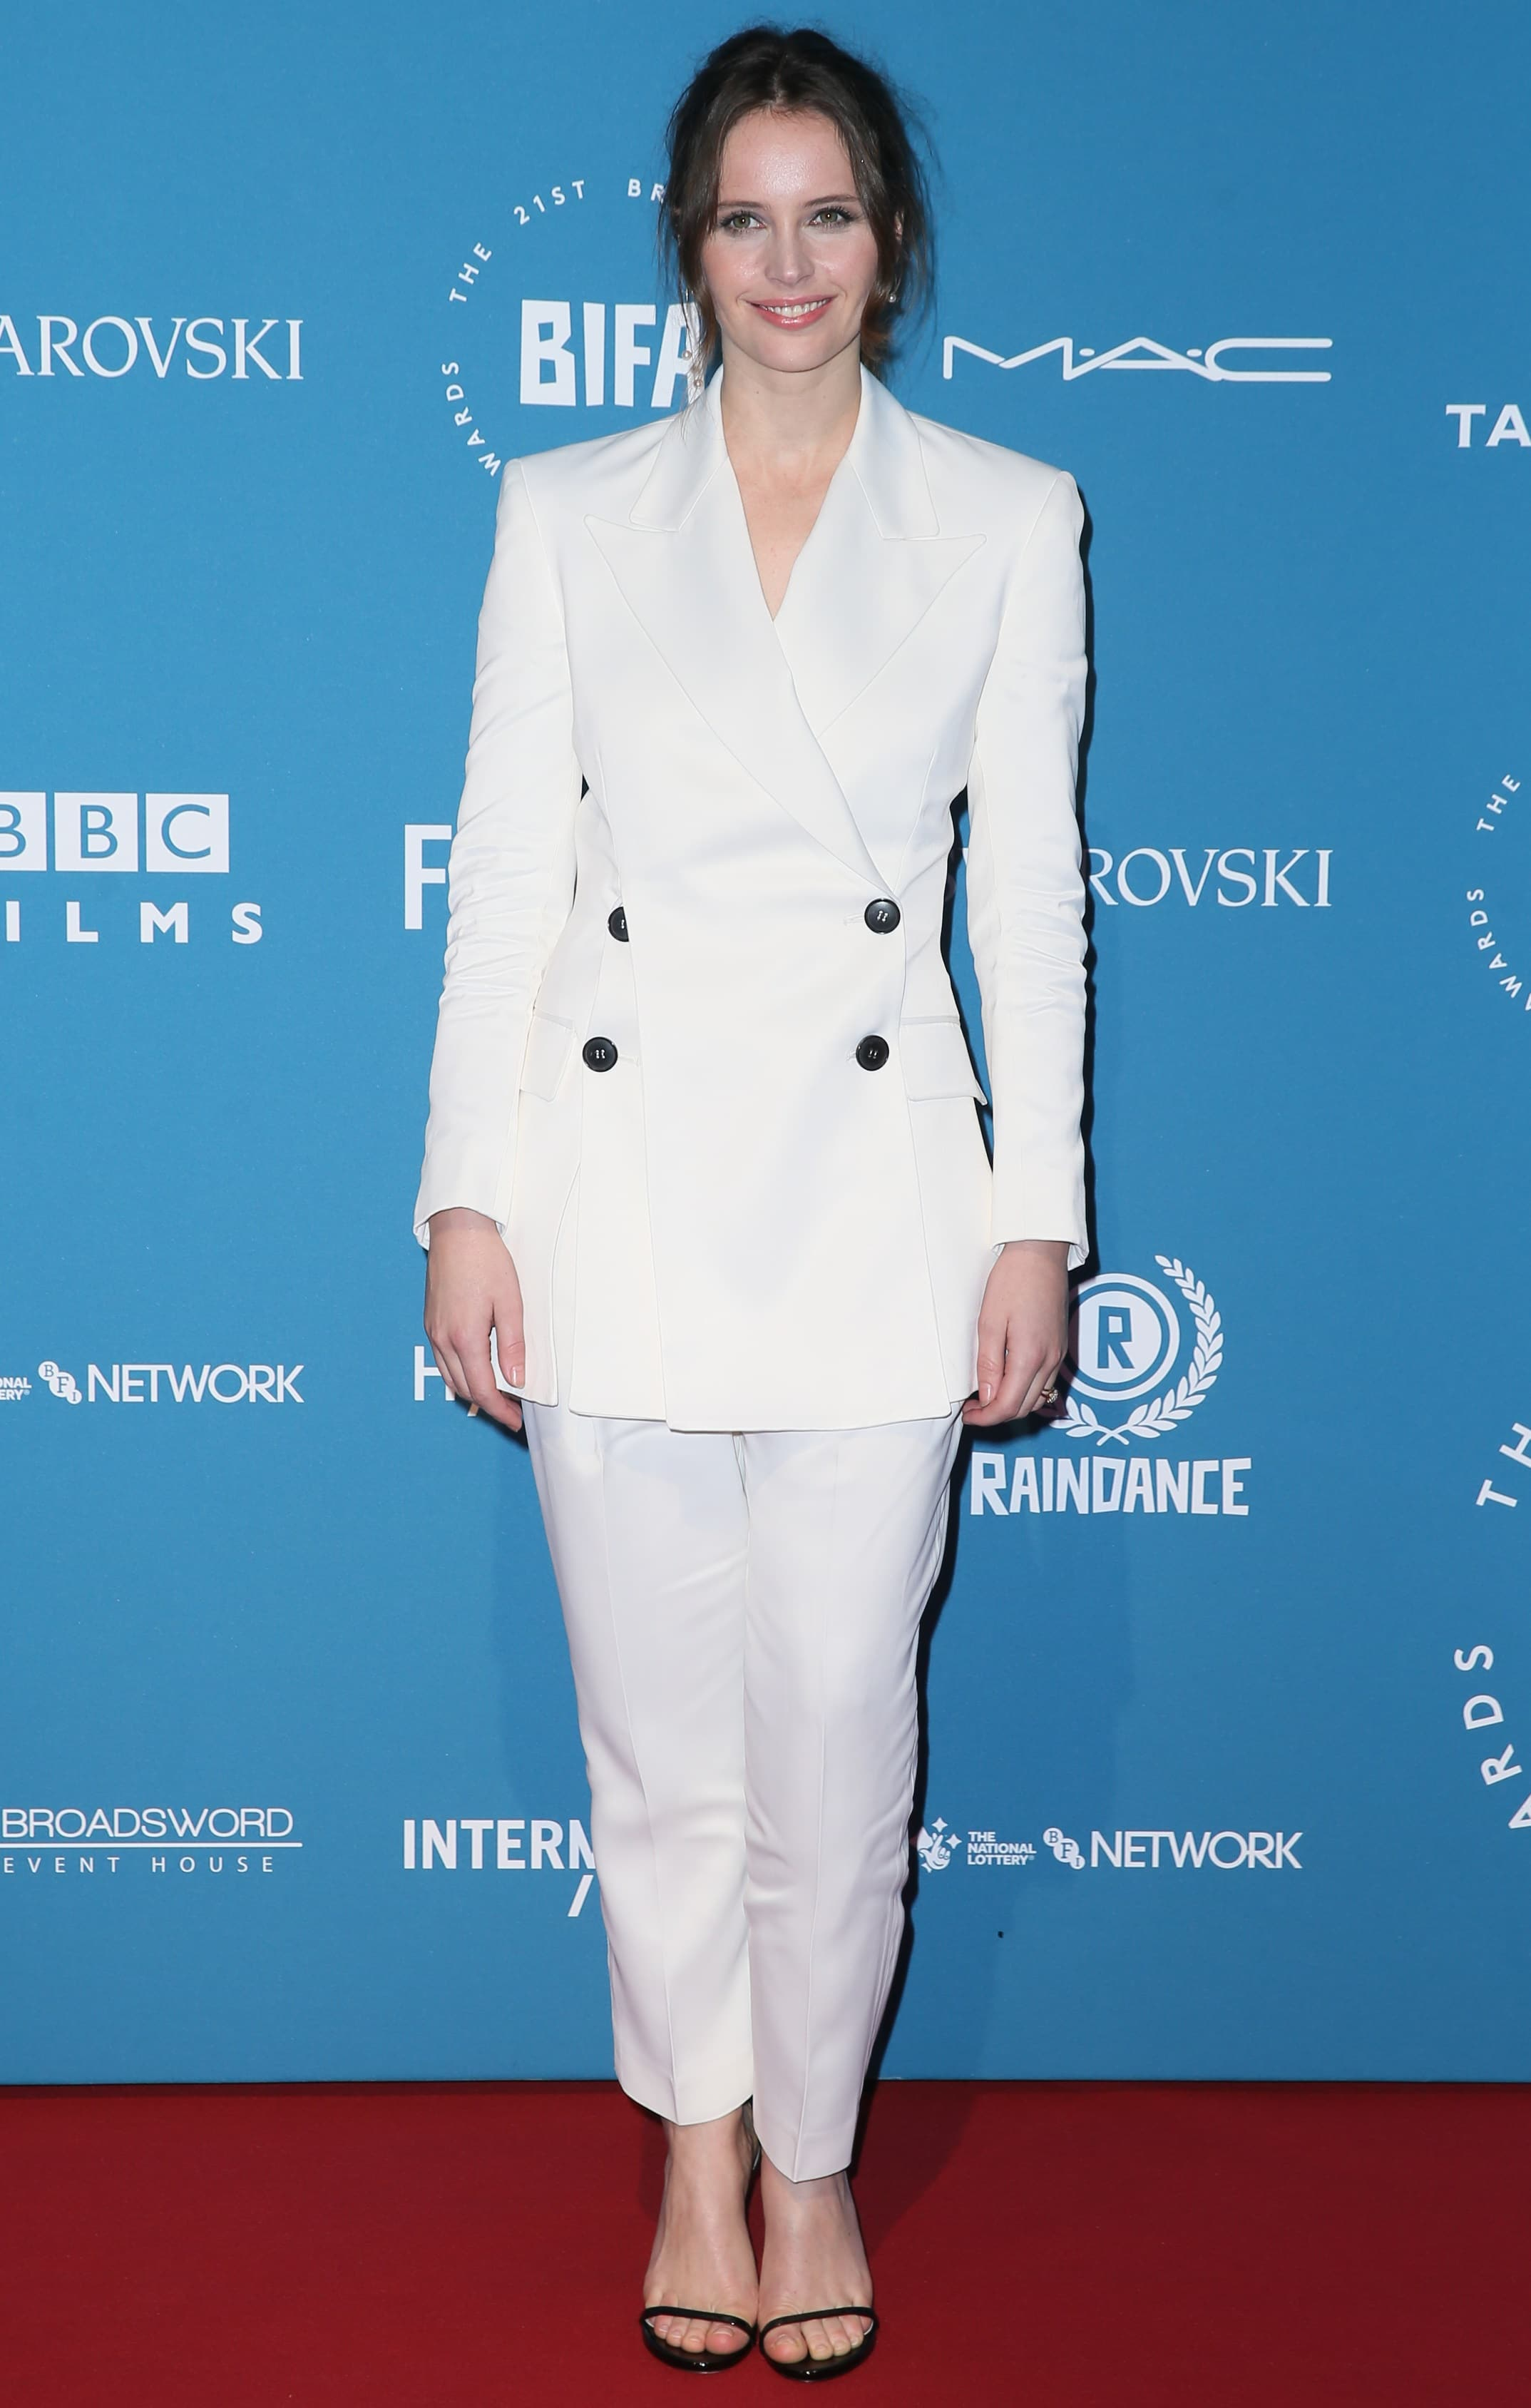 Felicity Jones received the Variety Award at the 2018 British Independent Film Awards (aka the BIFAs) at Old Billingsgate in London, England, on December 2, 2018